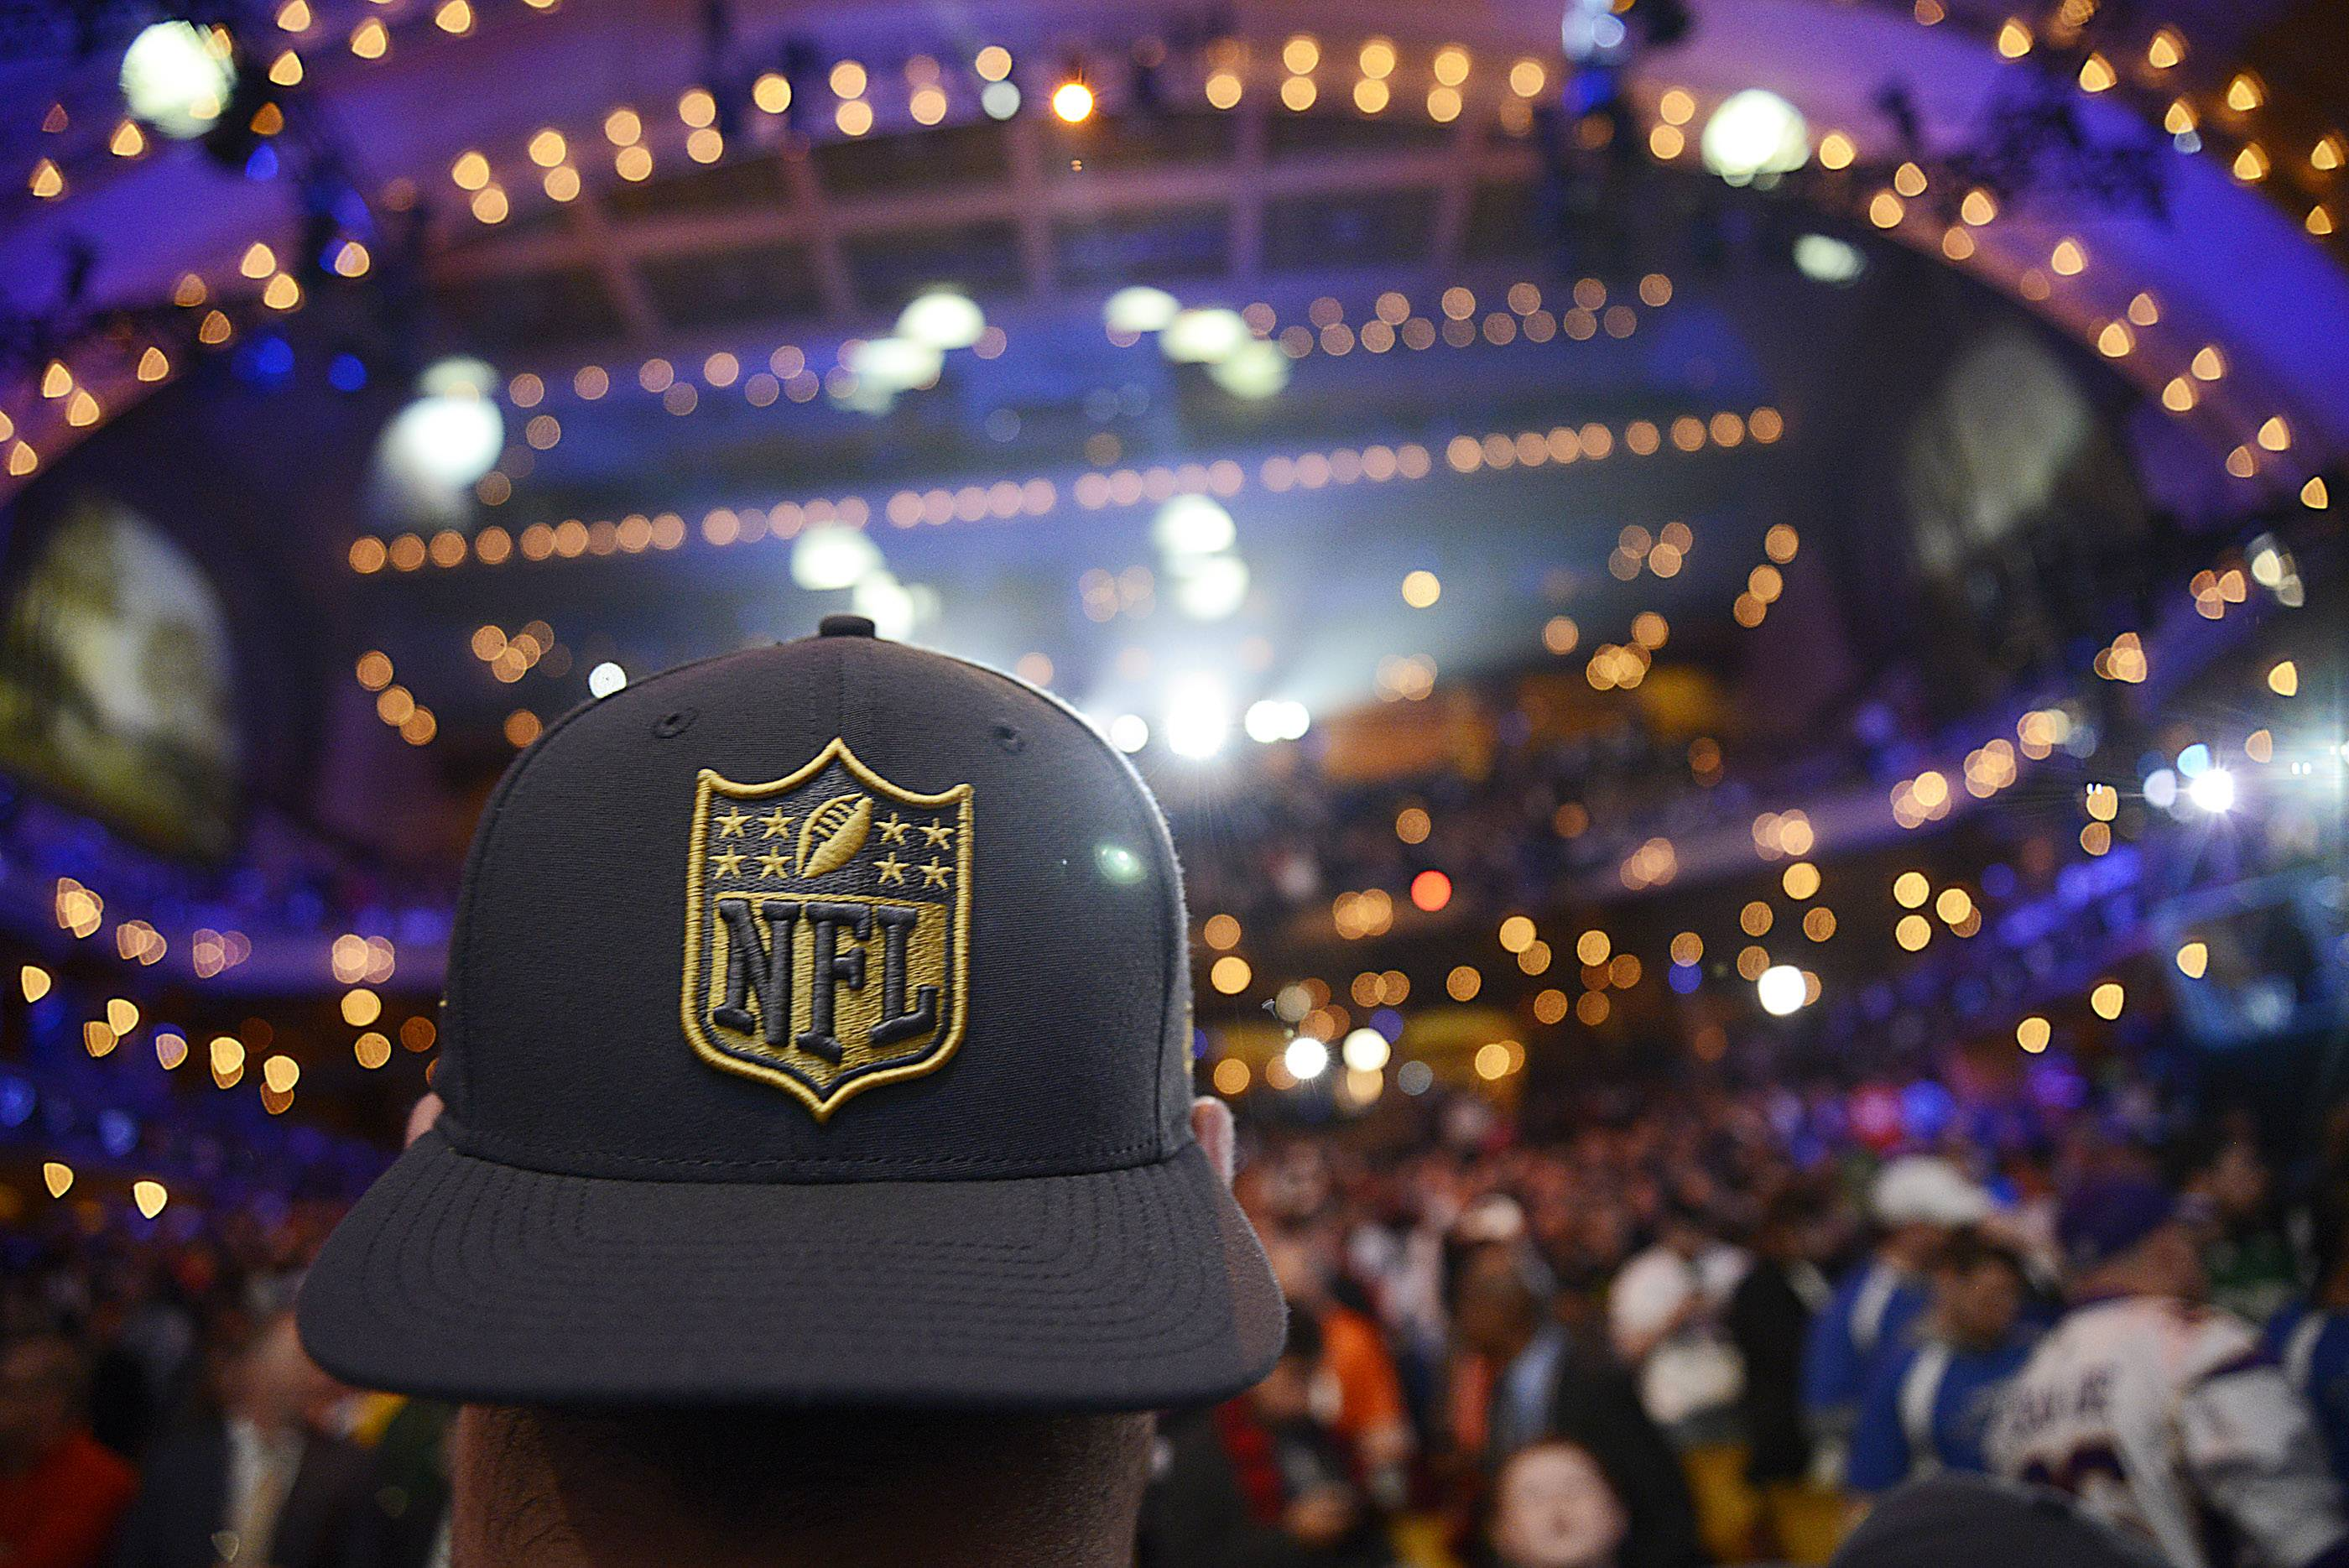 The Chicago Bears have been busy since last month's NFL draft was held here. Team officials say they've finalized contracts with seven of the nine NFL draft picks, and they've also signed 10 undrafted free agents.